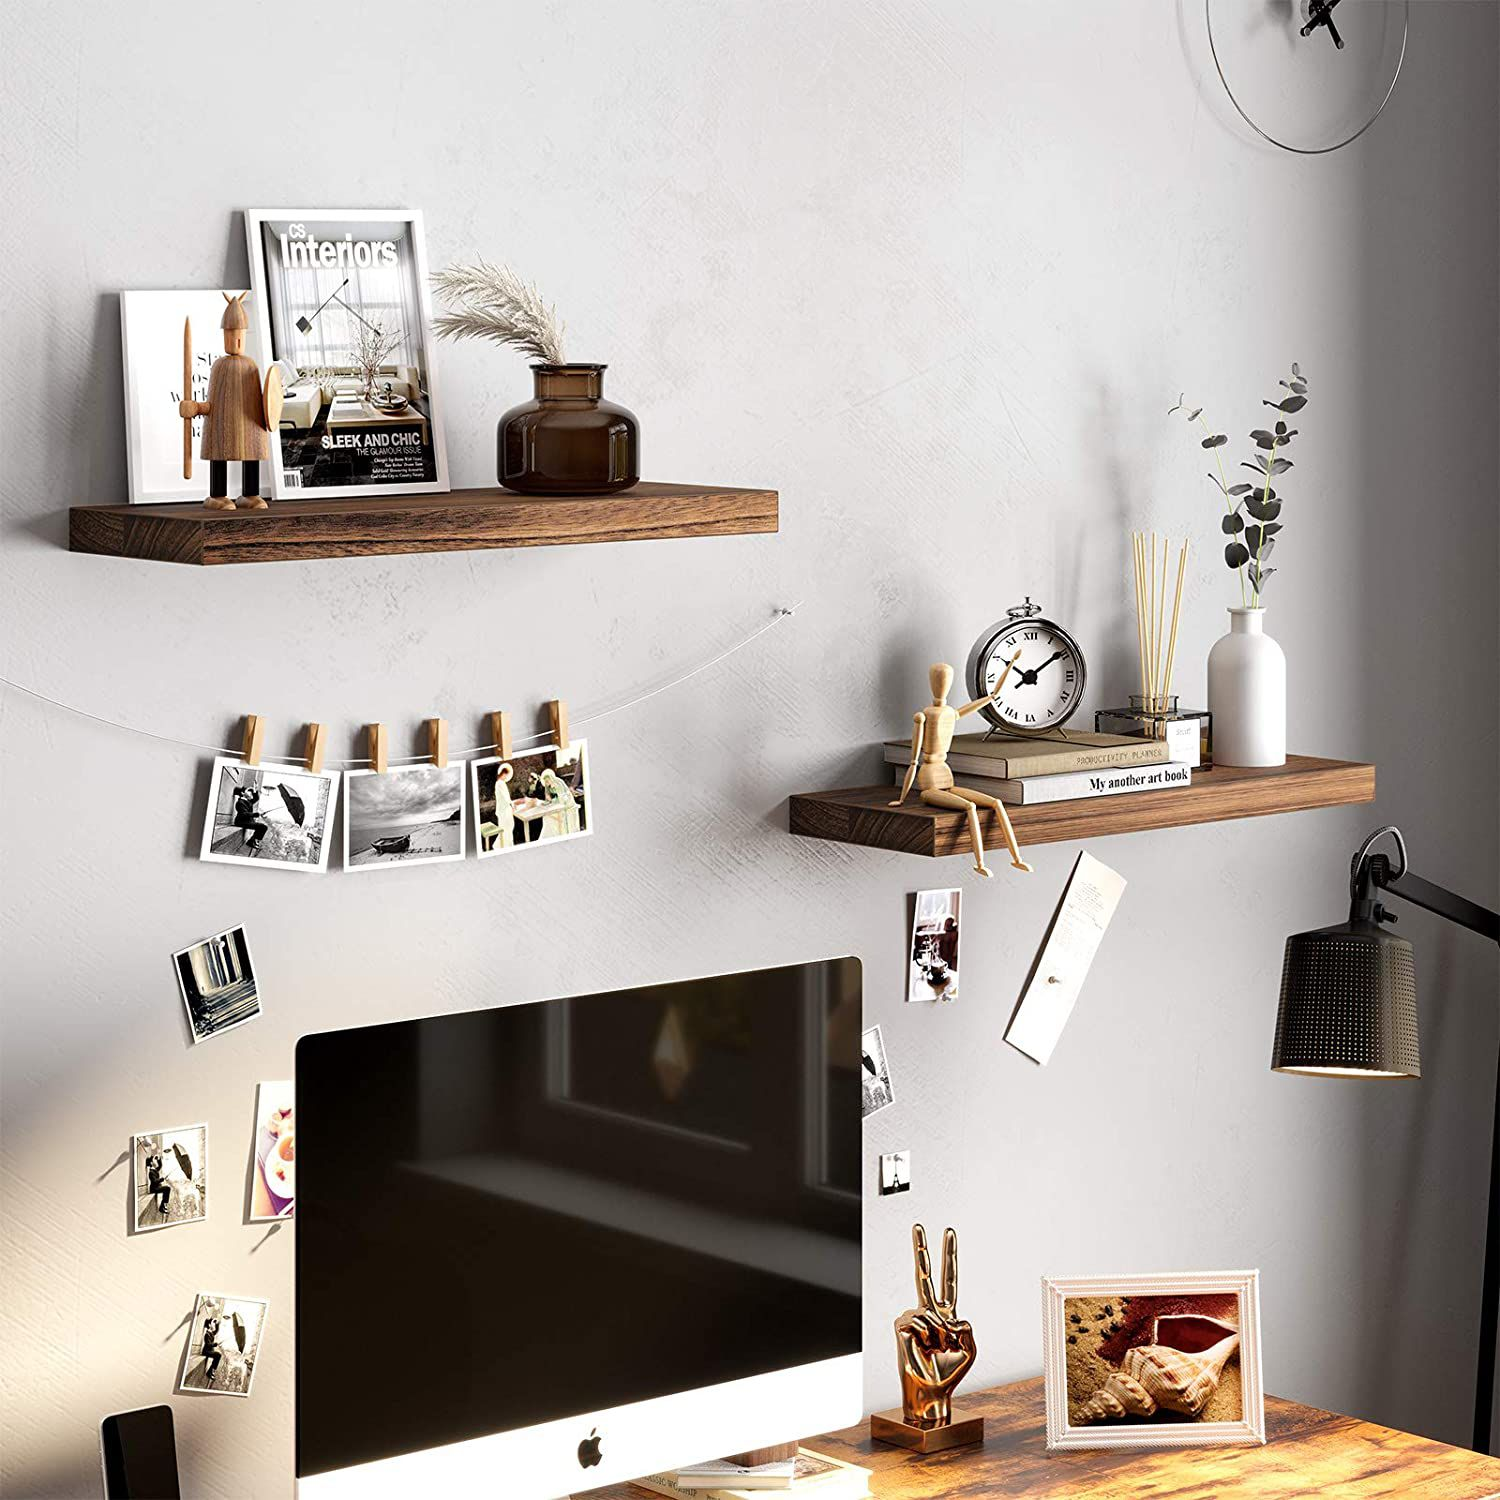 Functional Hanging Shelves in the Workspace